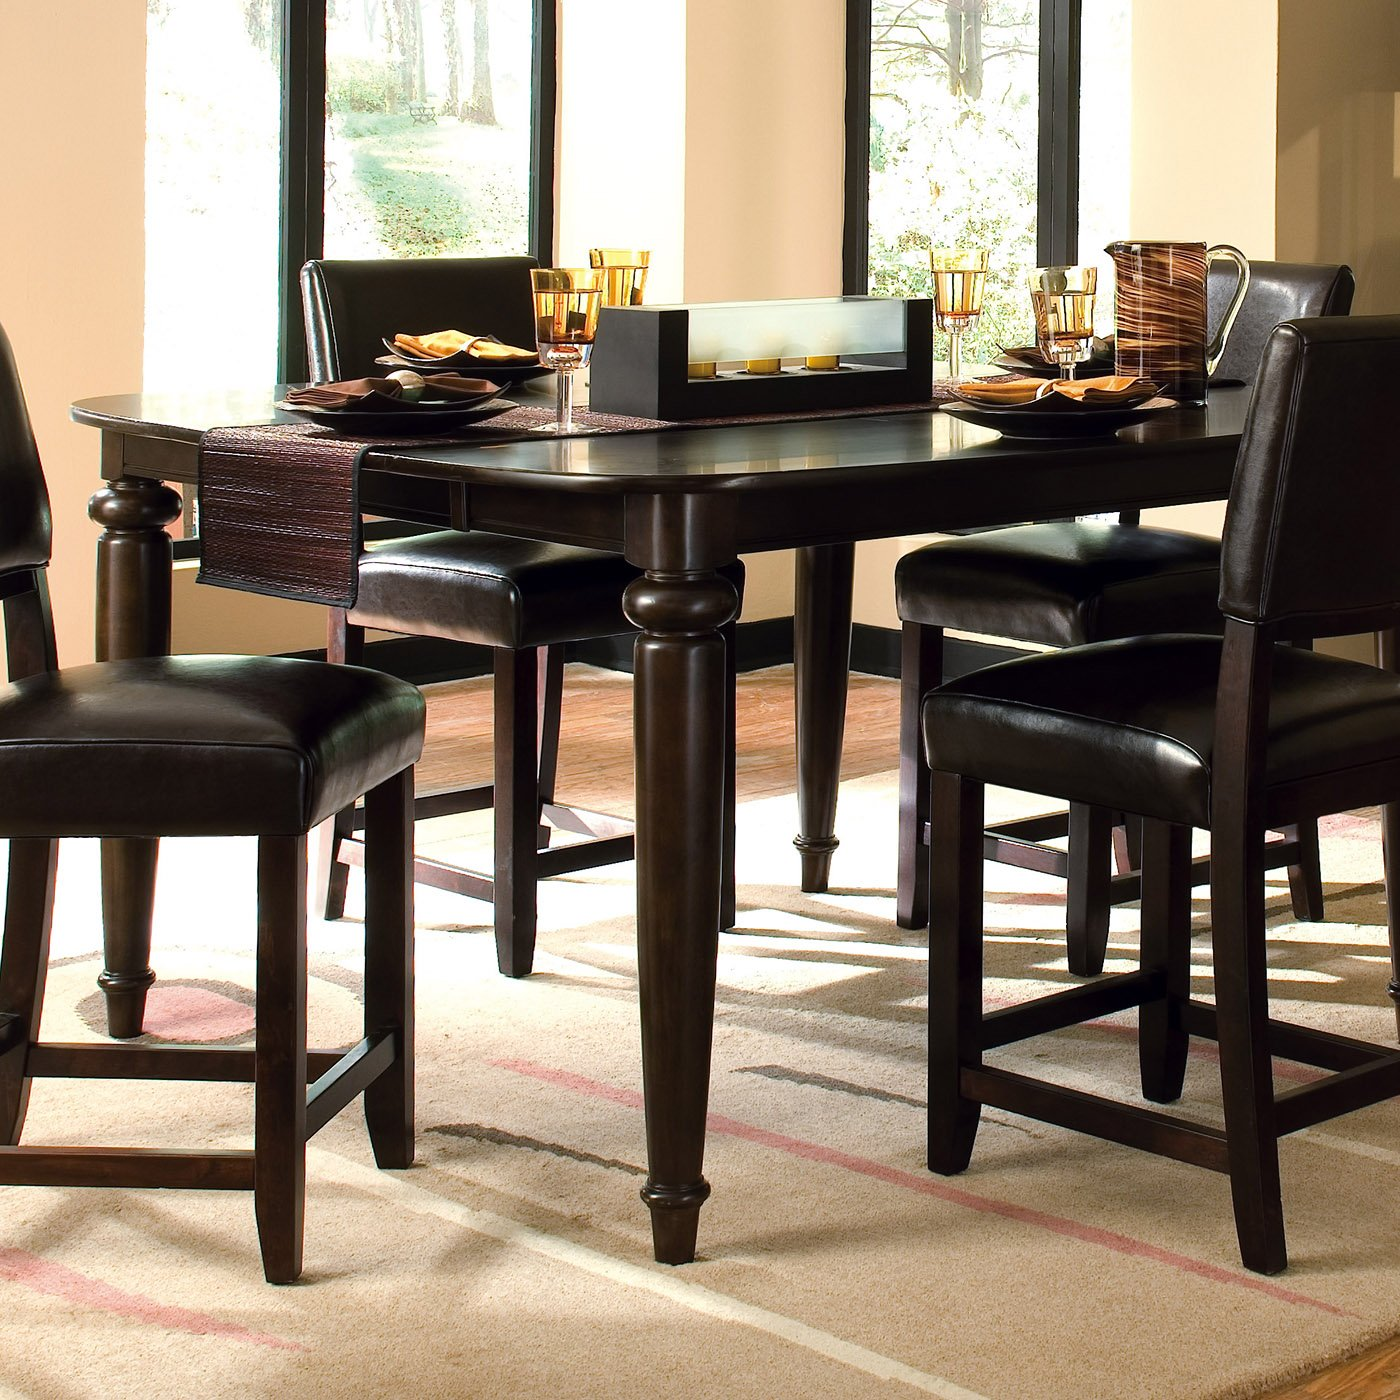 square kitchen tables photo with square kitchen table - Square Dining Room Table Sets